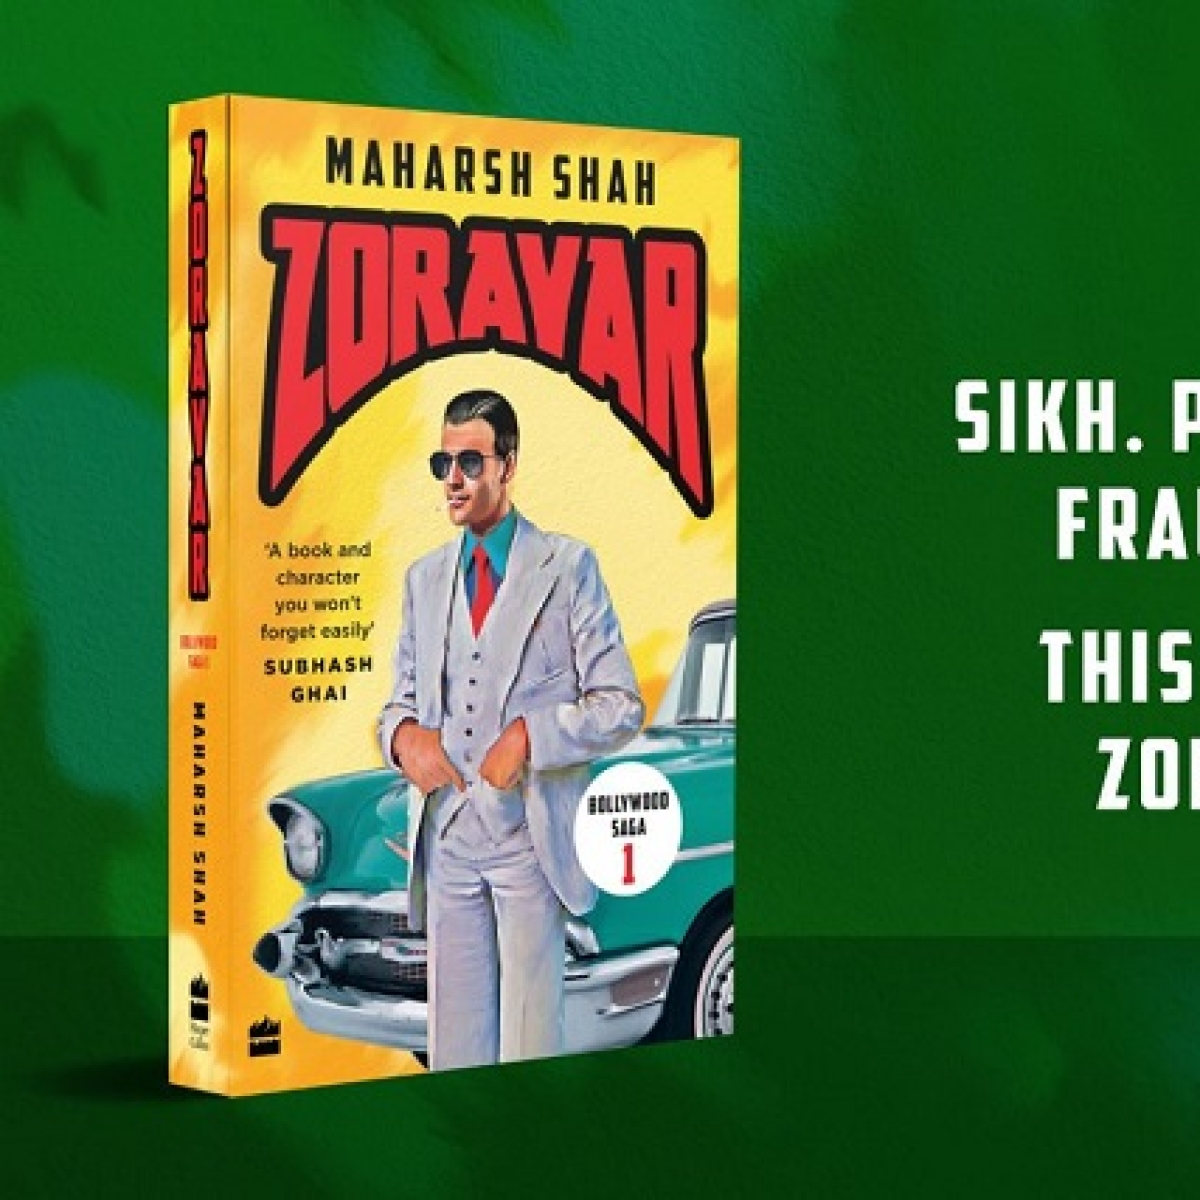 Zoravar - Book One in the Bollywood Saga review: An interesting, filmy thriller